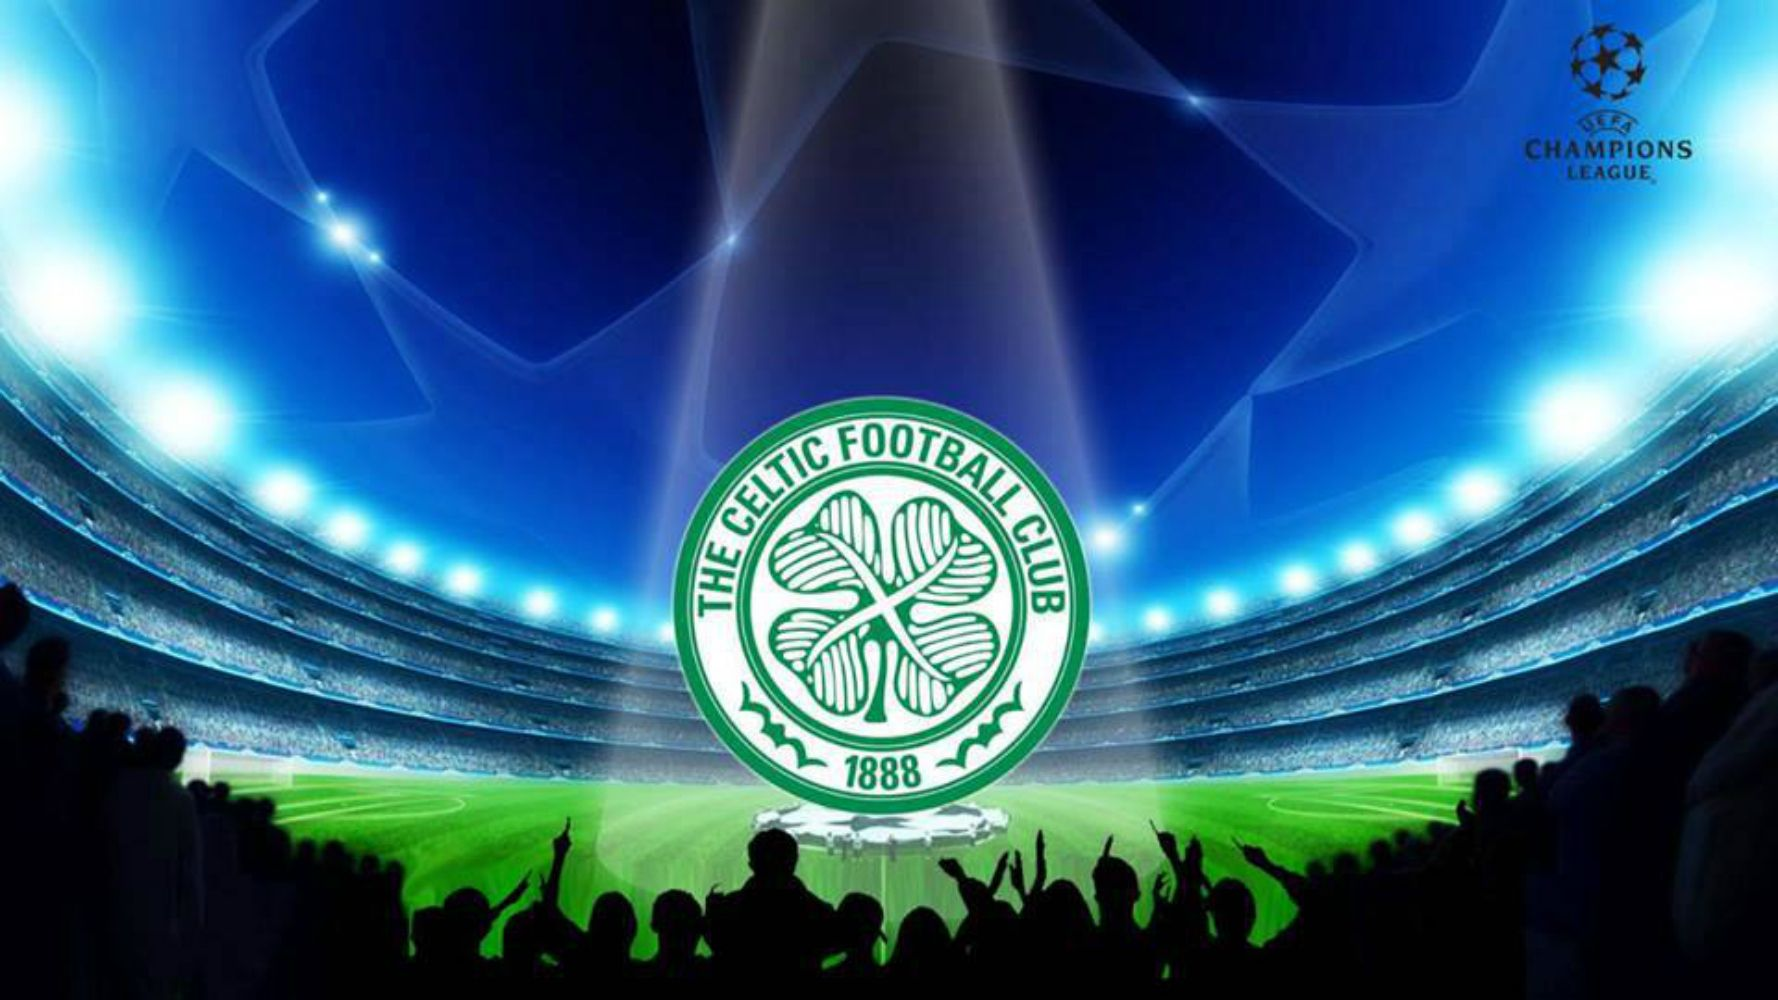 Glasgow Celtic F.C Bayern, Android wallpaper, Celtic club